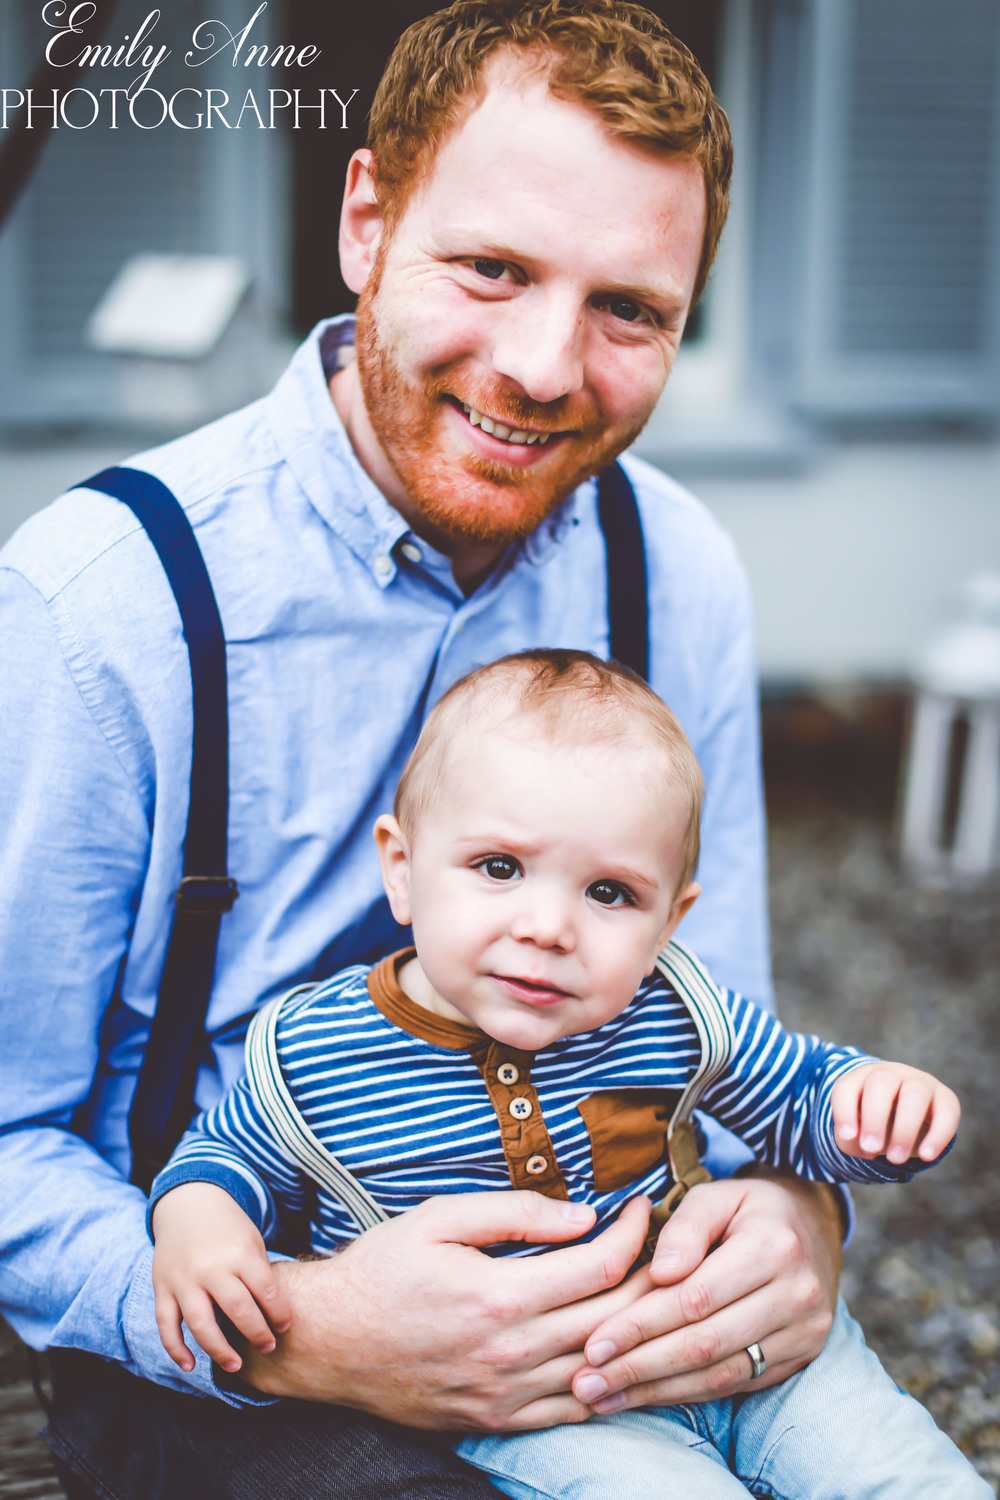 sweet southern family photos best pinterest photography posing tips for family emily anne international photographer shot in appenzell switzerland tiny hands and babies nashville tennessee father son photos top photography around nashville area and european switzerland father and son photos